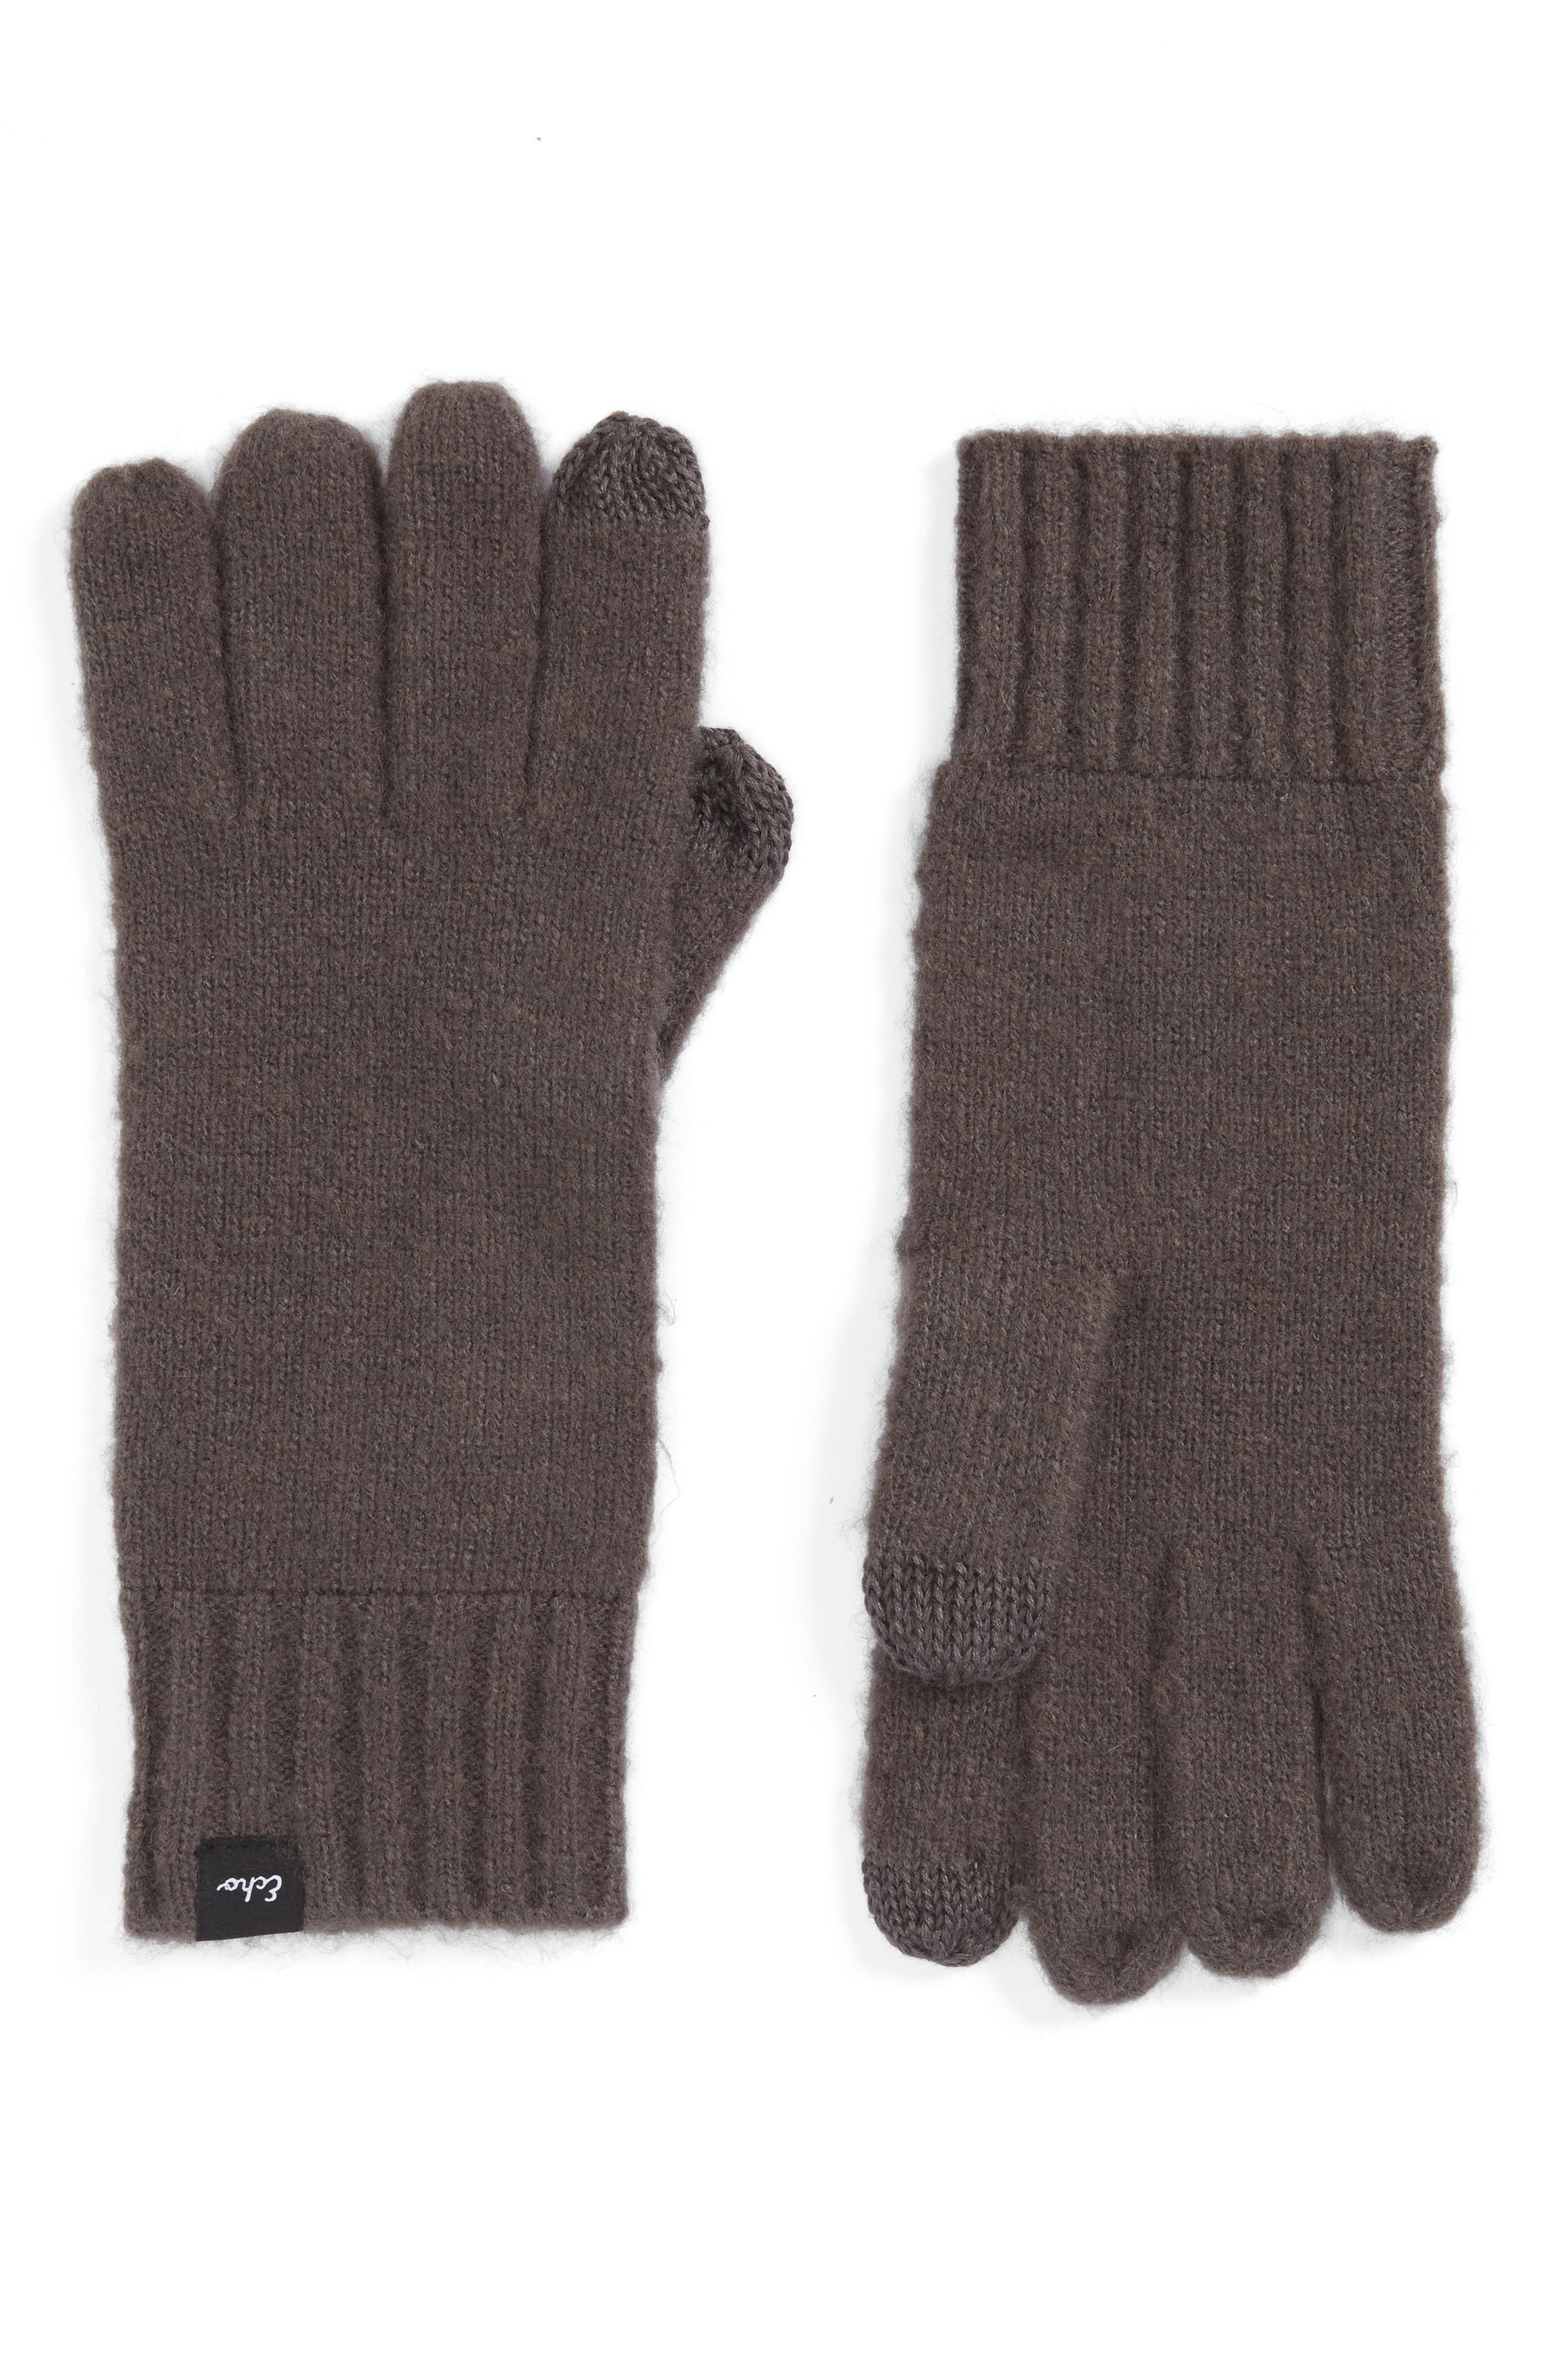 'Touch' Stretch Fleece Tech Gloves,                             Main thumbnail 1, color,                             011